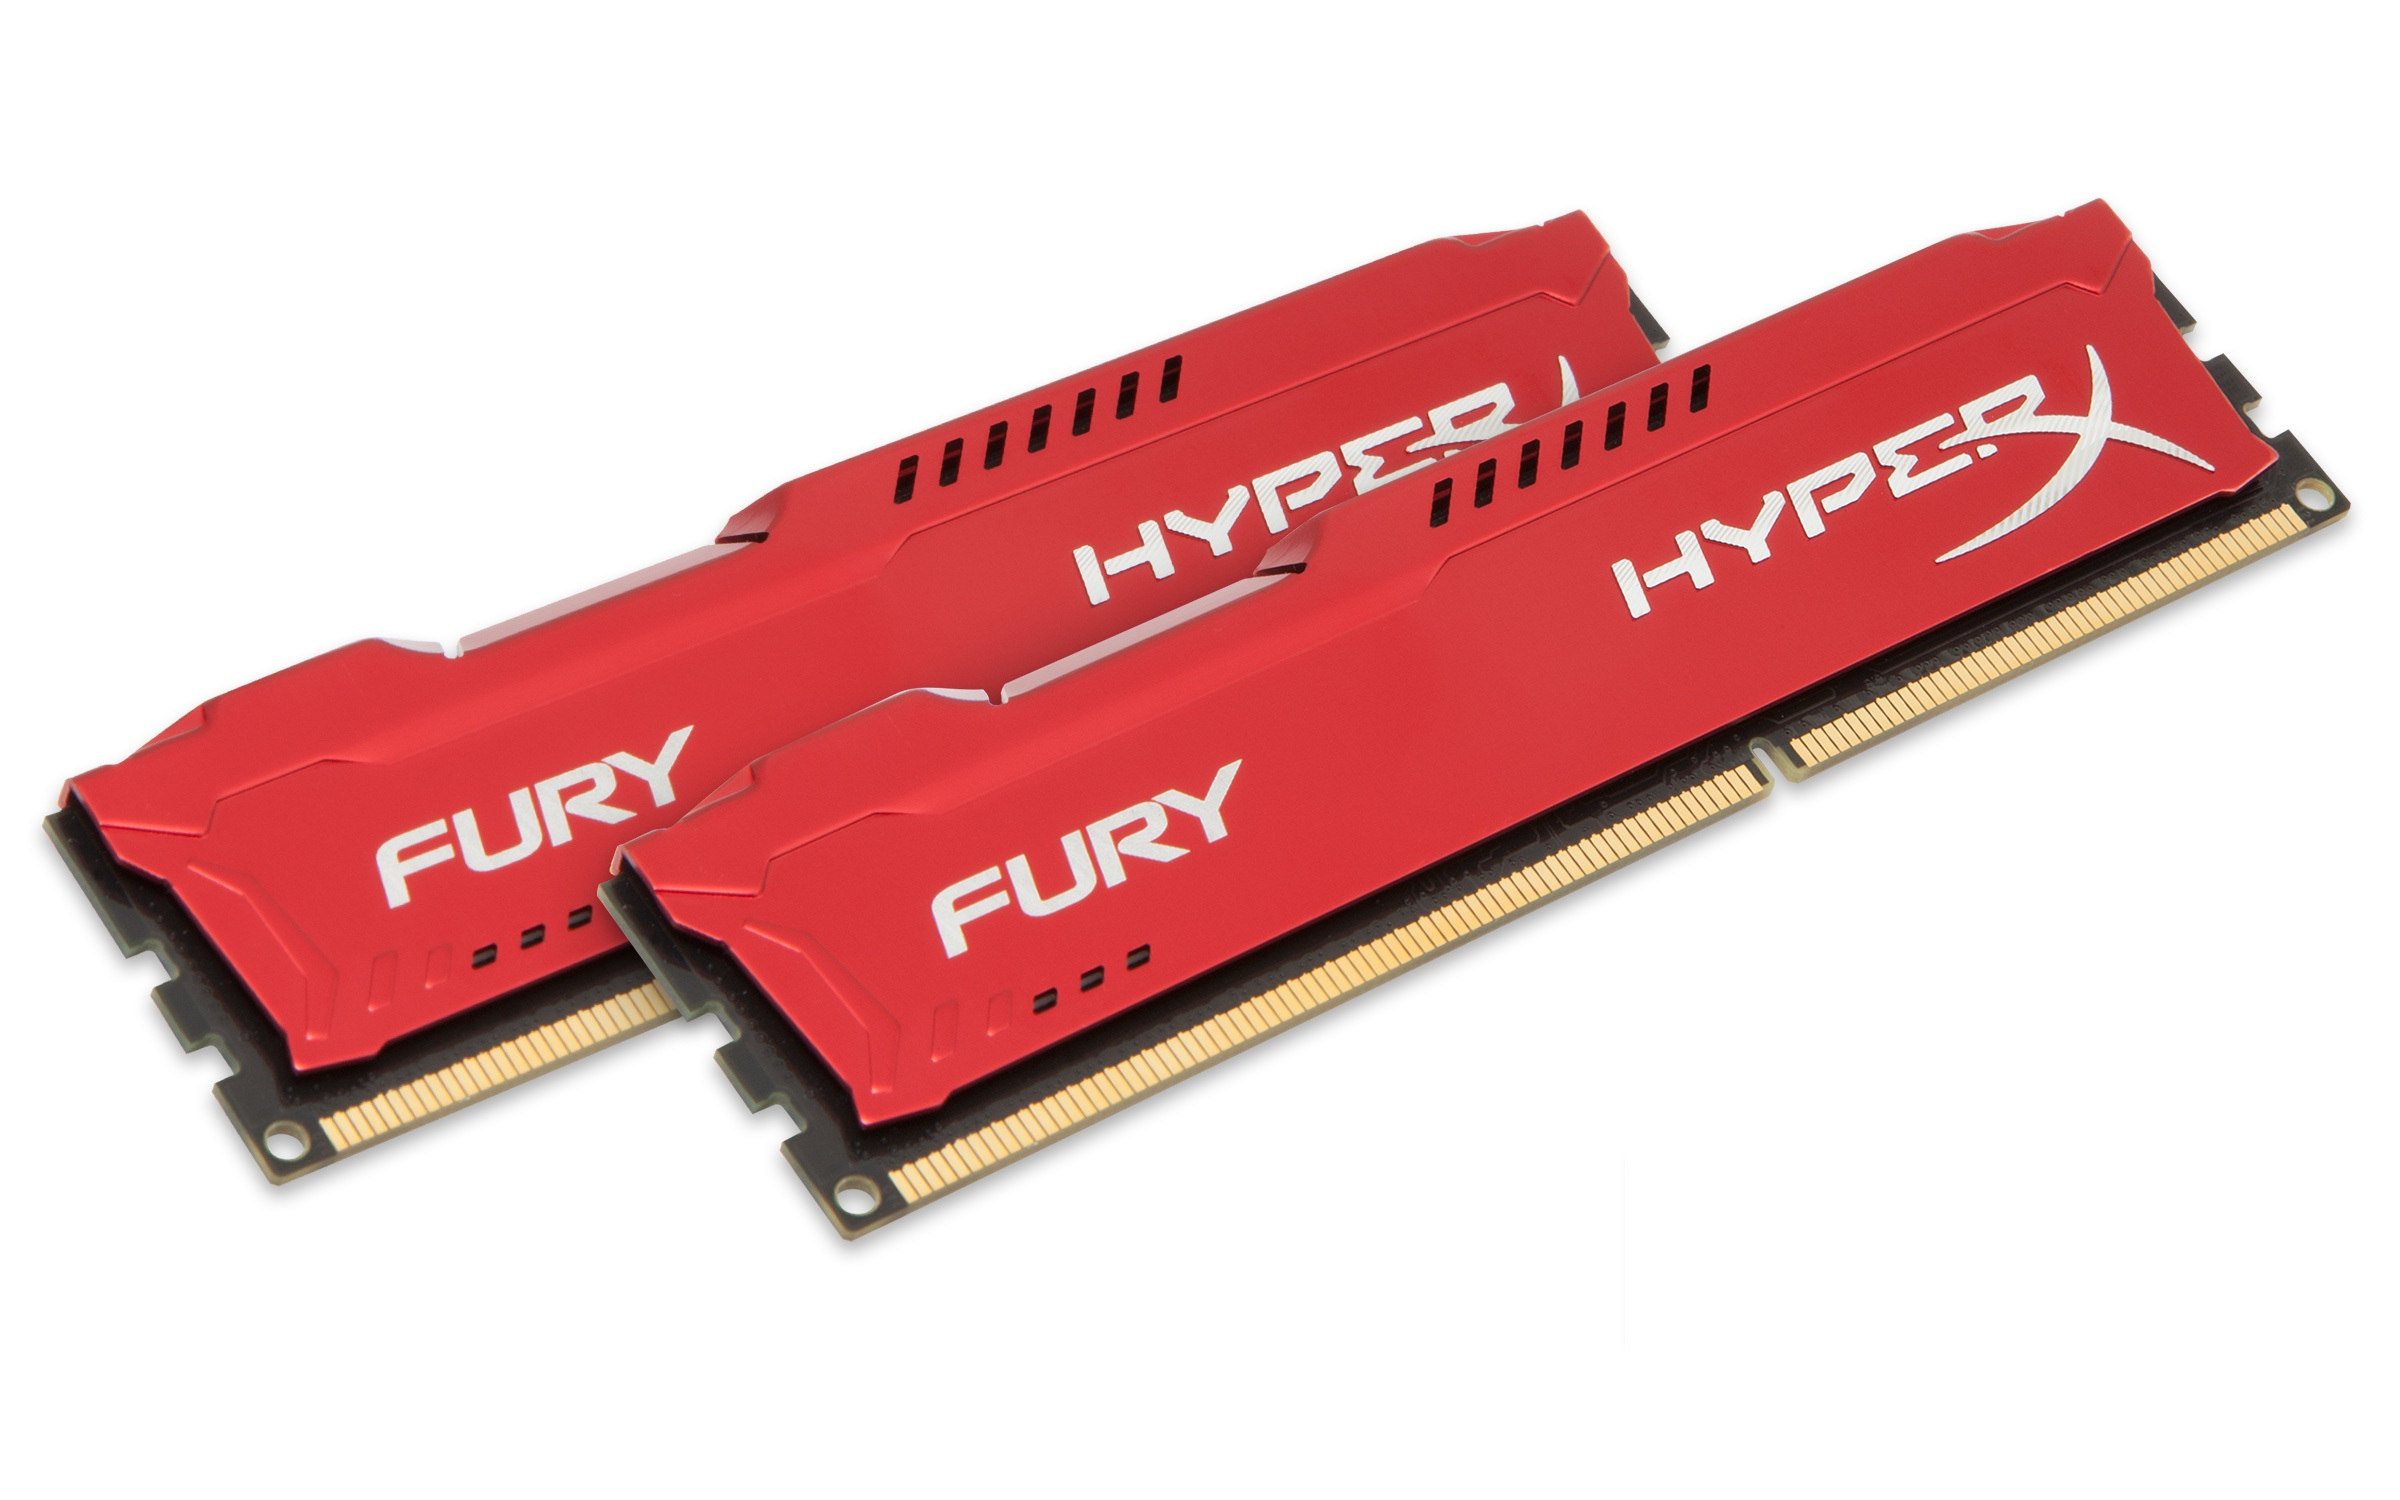 price of 16GB 1333MHz DDR3 CL9 DIMM (Kit of 2) HyperX FURY Red on ShopHub | ecommerce, price check, start a business, sell online